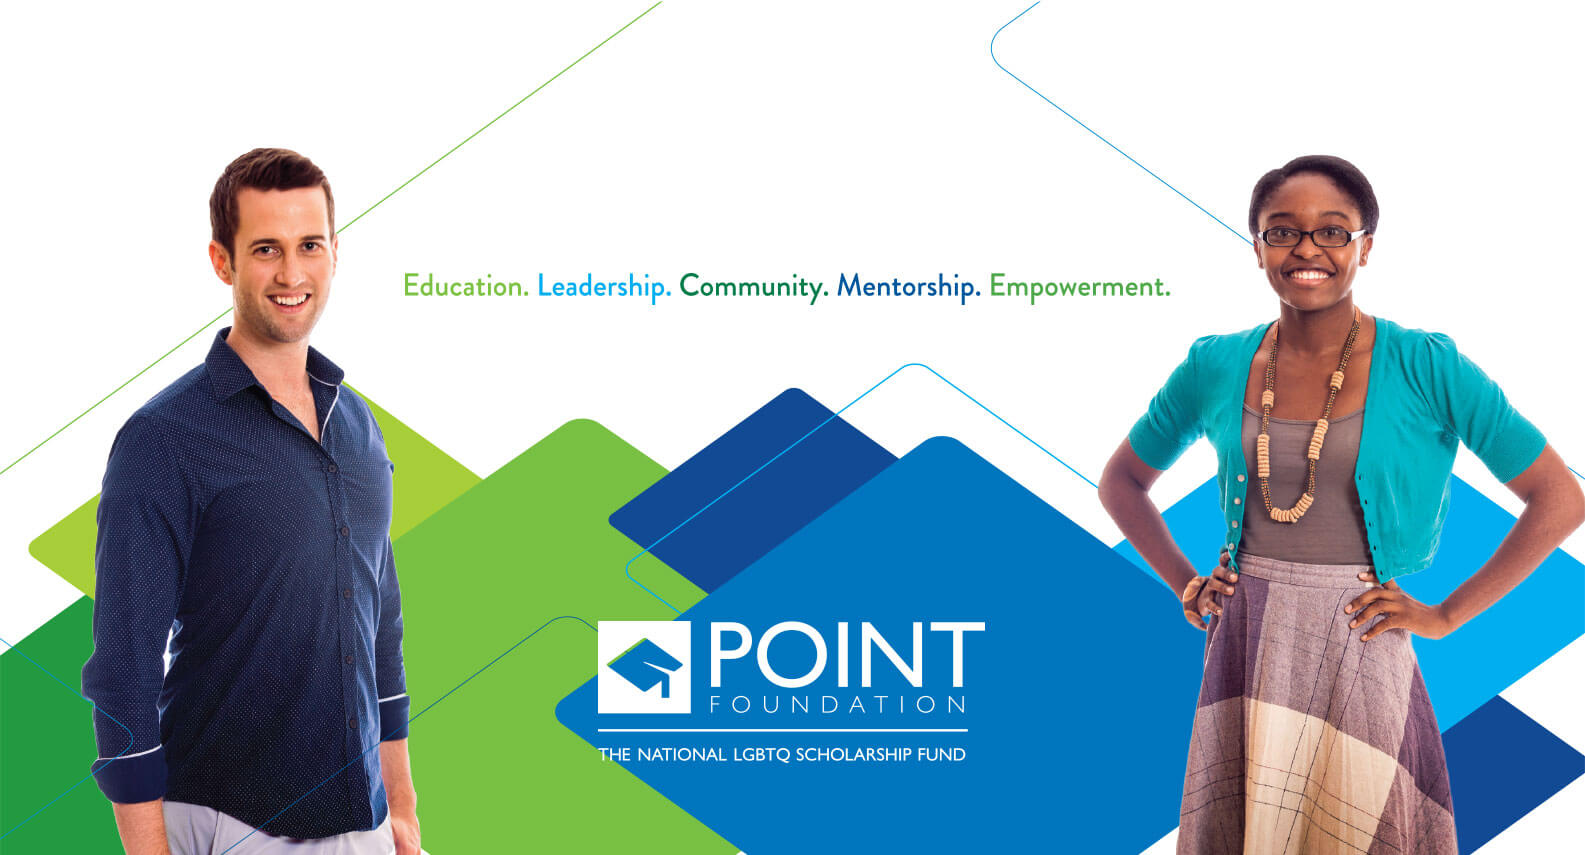 Point Foundation branding imagery